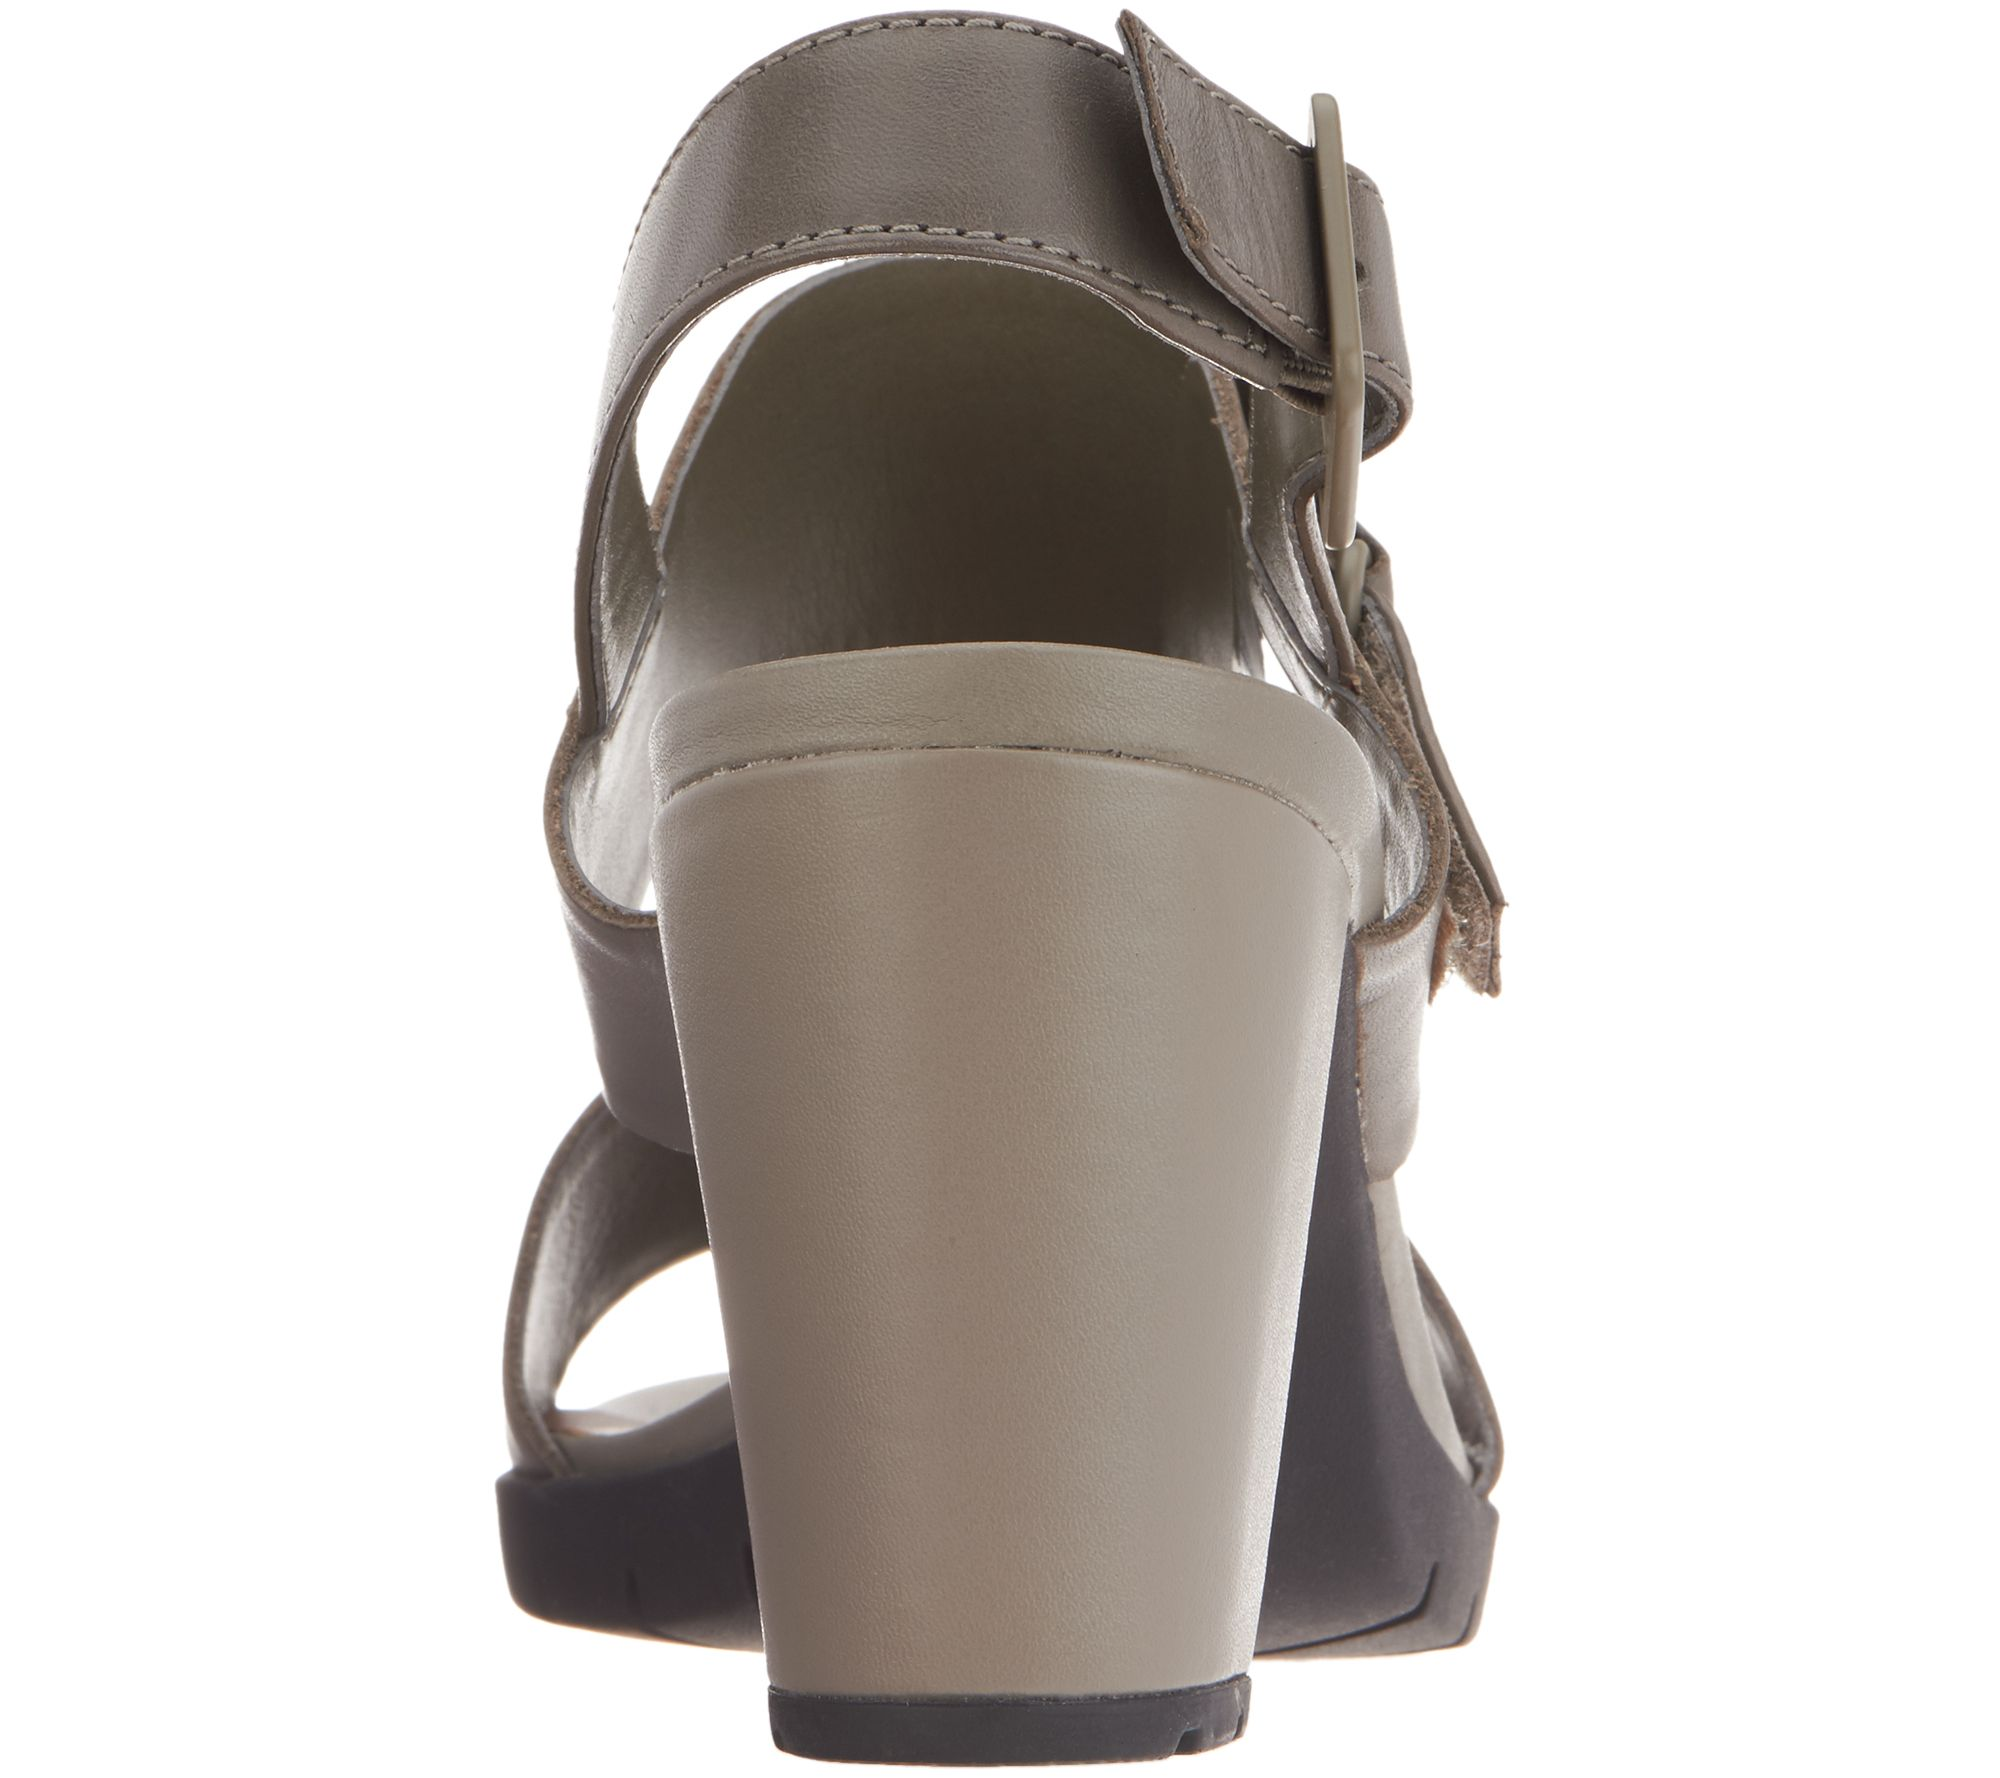 0f39d188c96 Clarks Leather Block Heel Adjustable Sandals - Kurtley Shine - Page 1 —  QVC.com